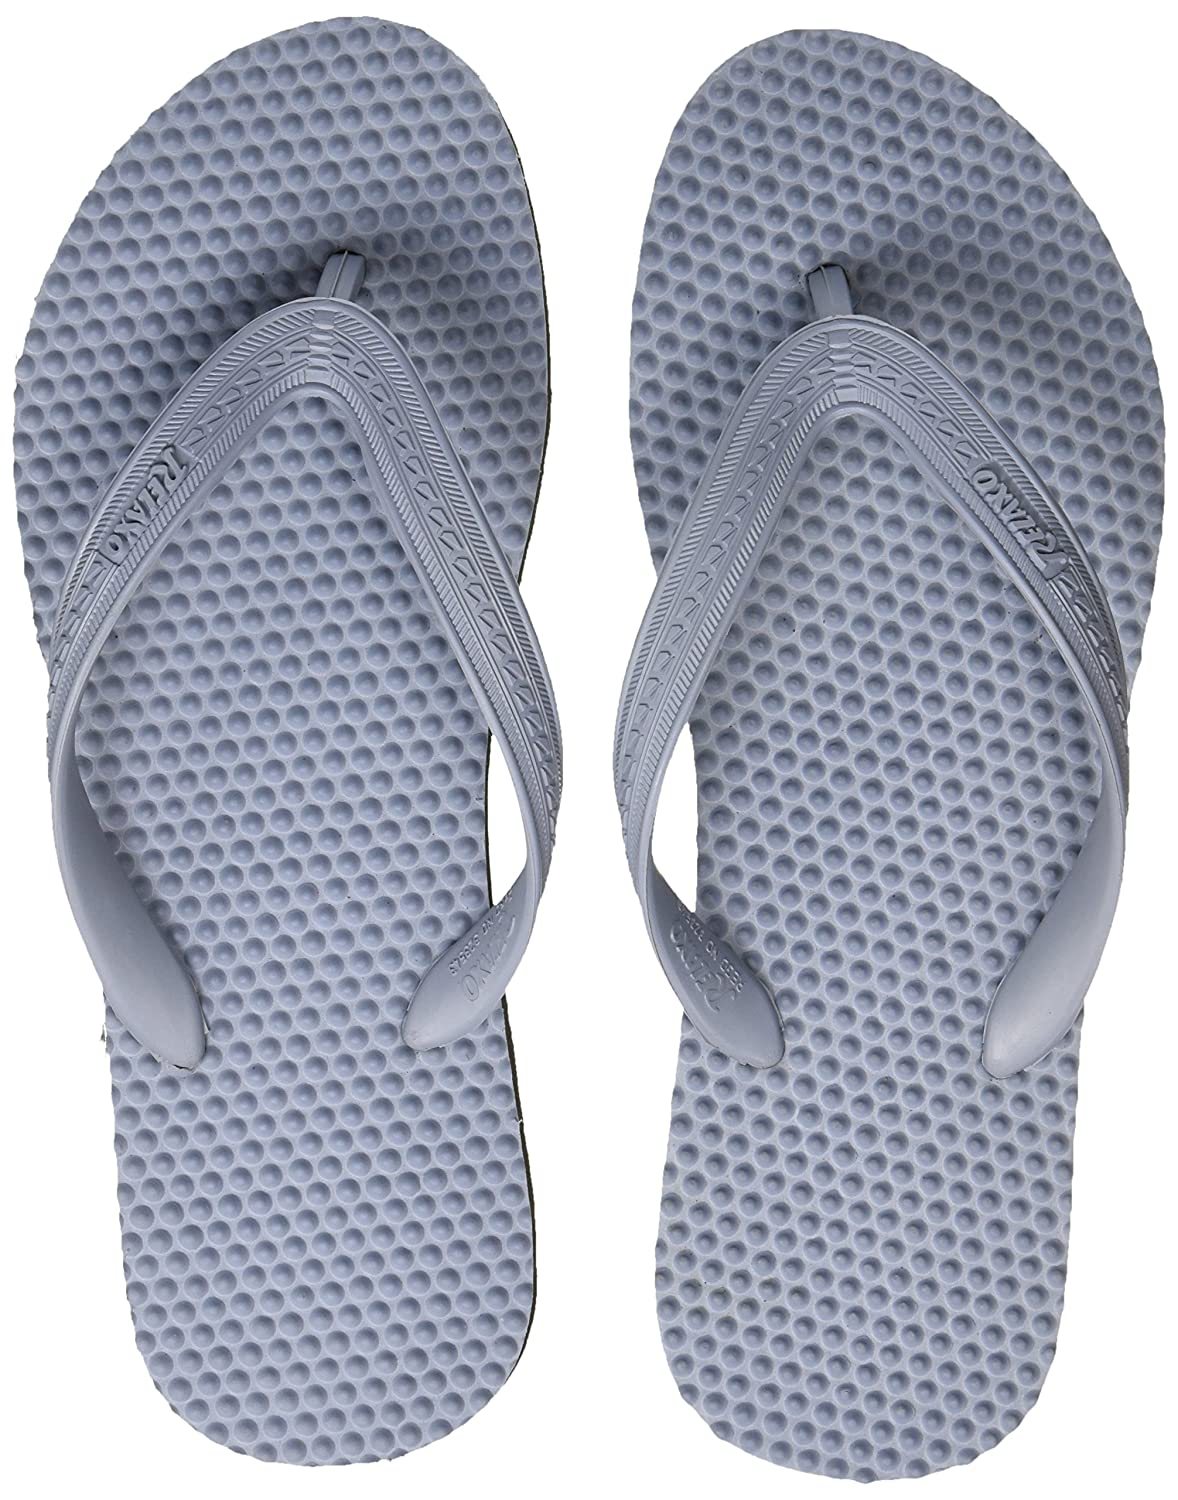 Buy Relaxo Men's House Slippers at Amazon.in